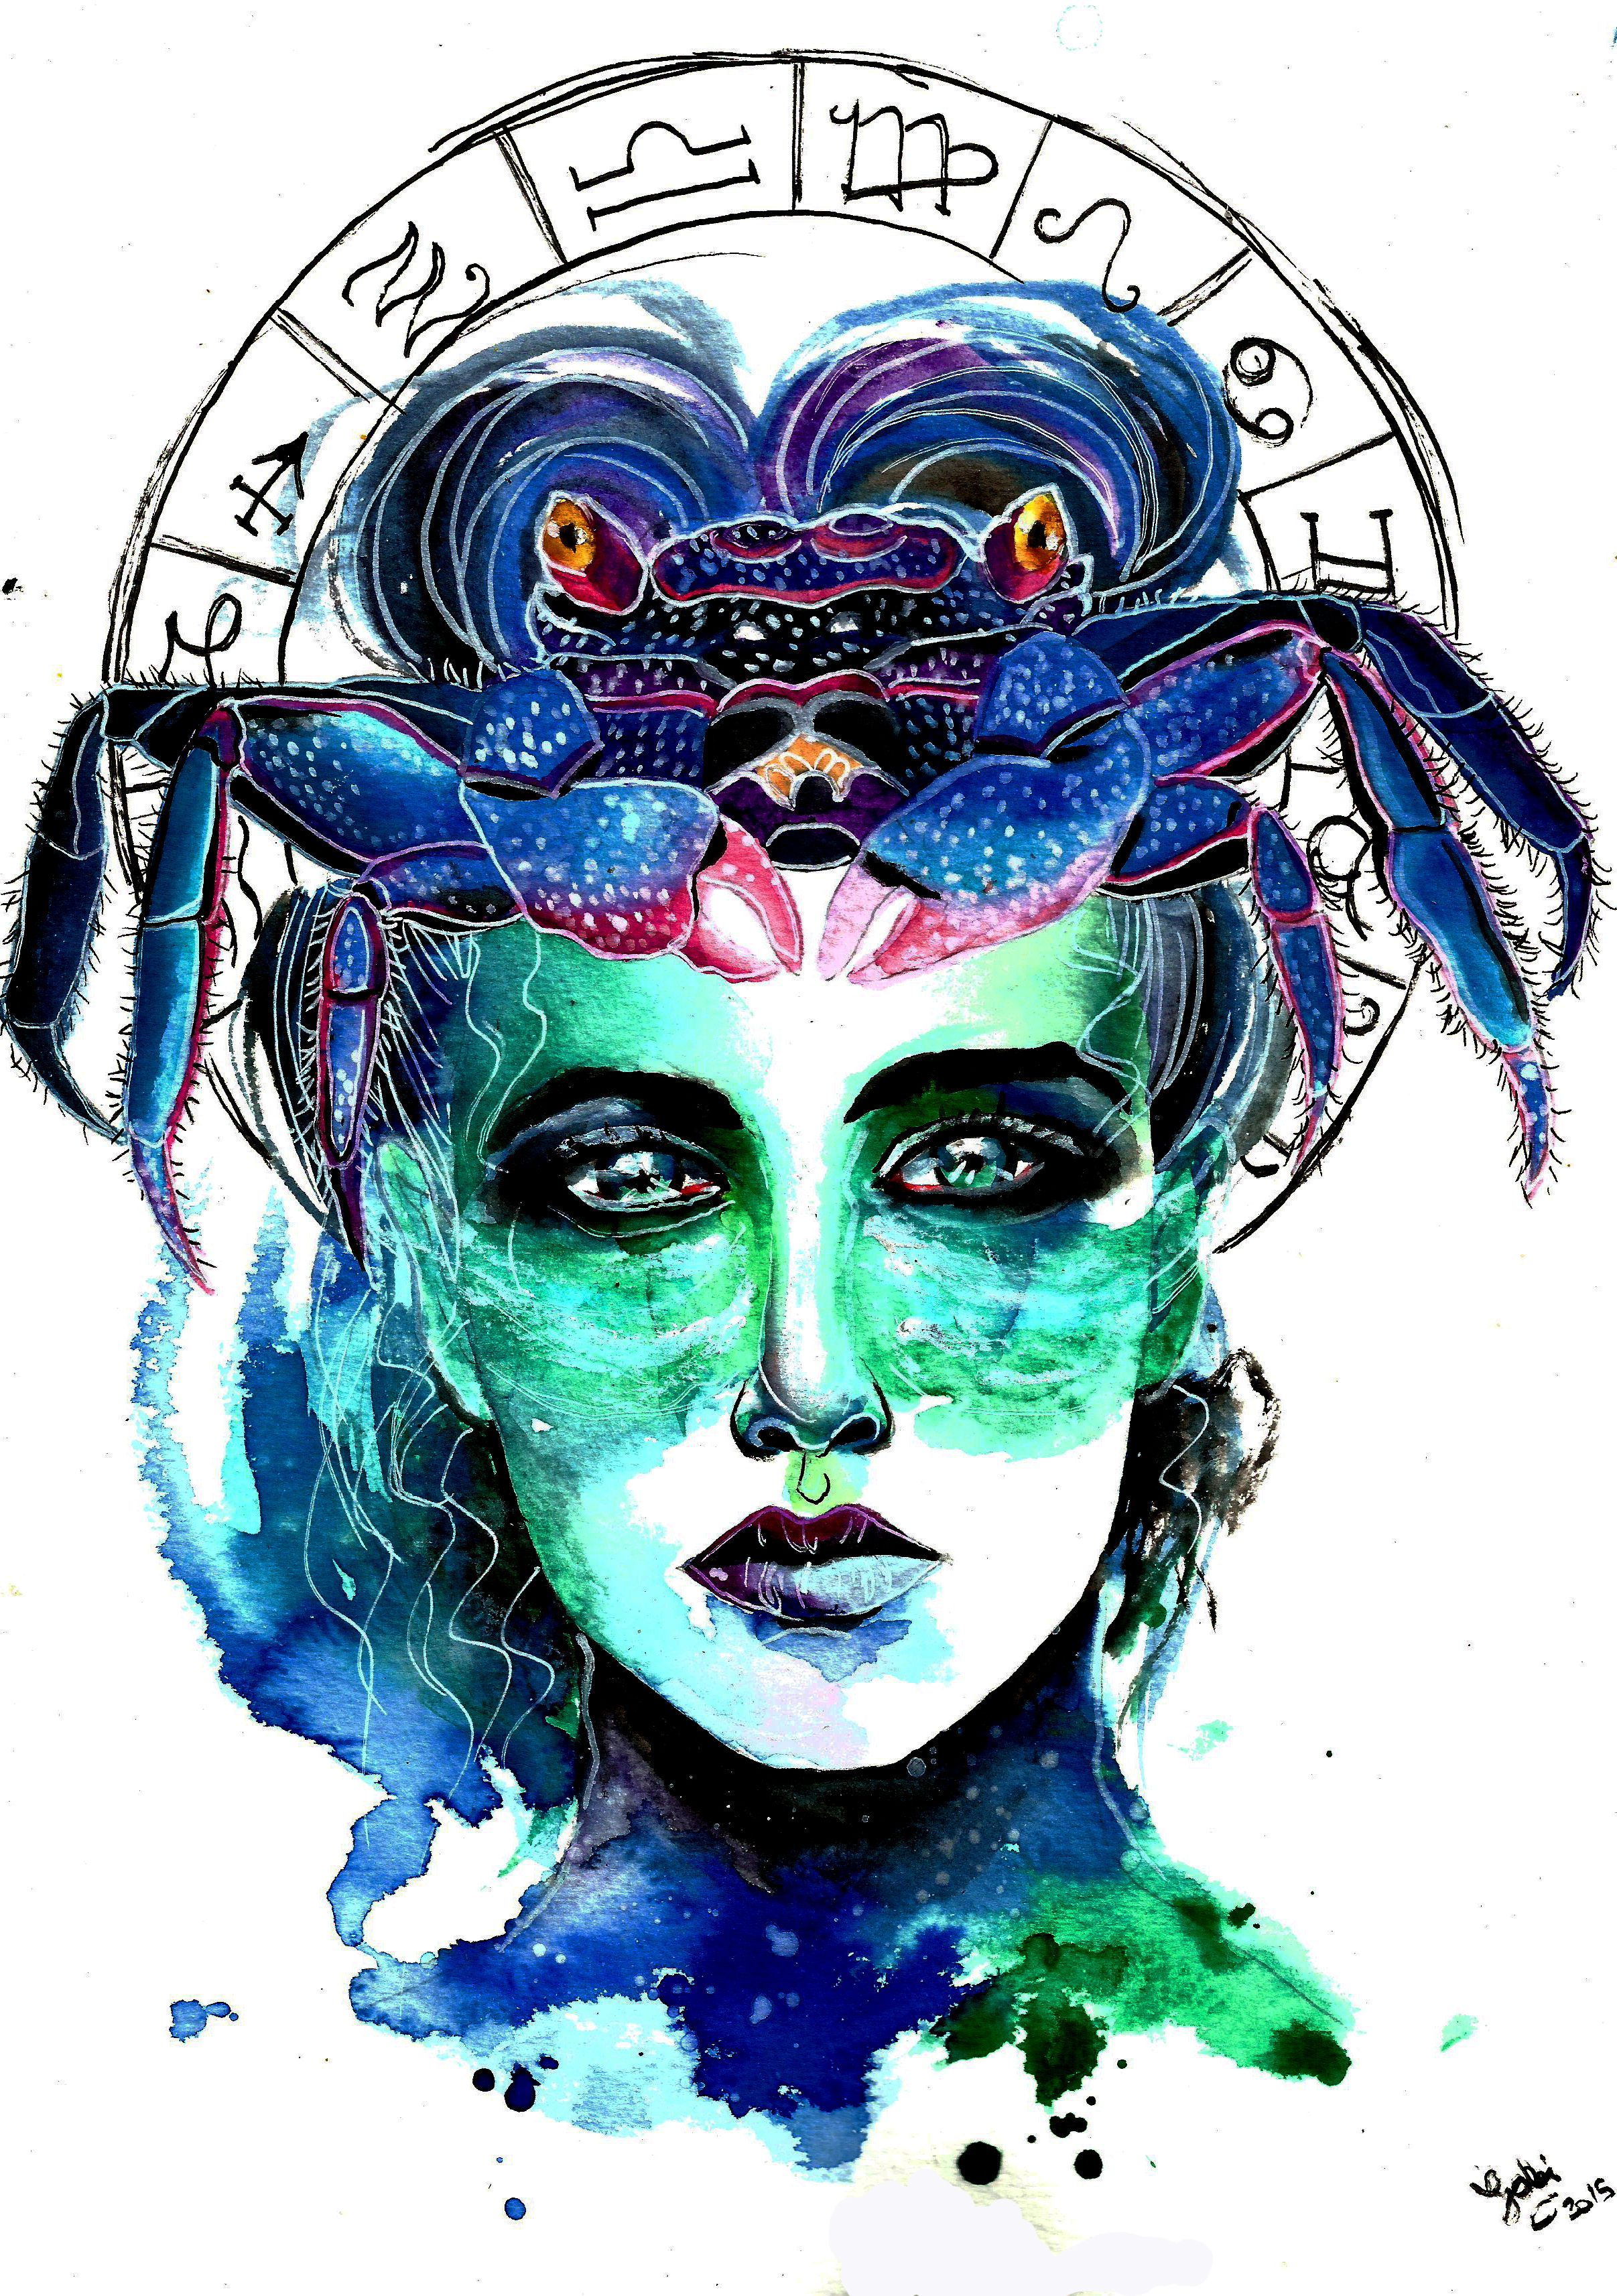 Zodiac Sign Cancer.Art by Gabi Xavier | Cancer Inspiration ...